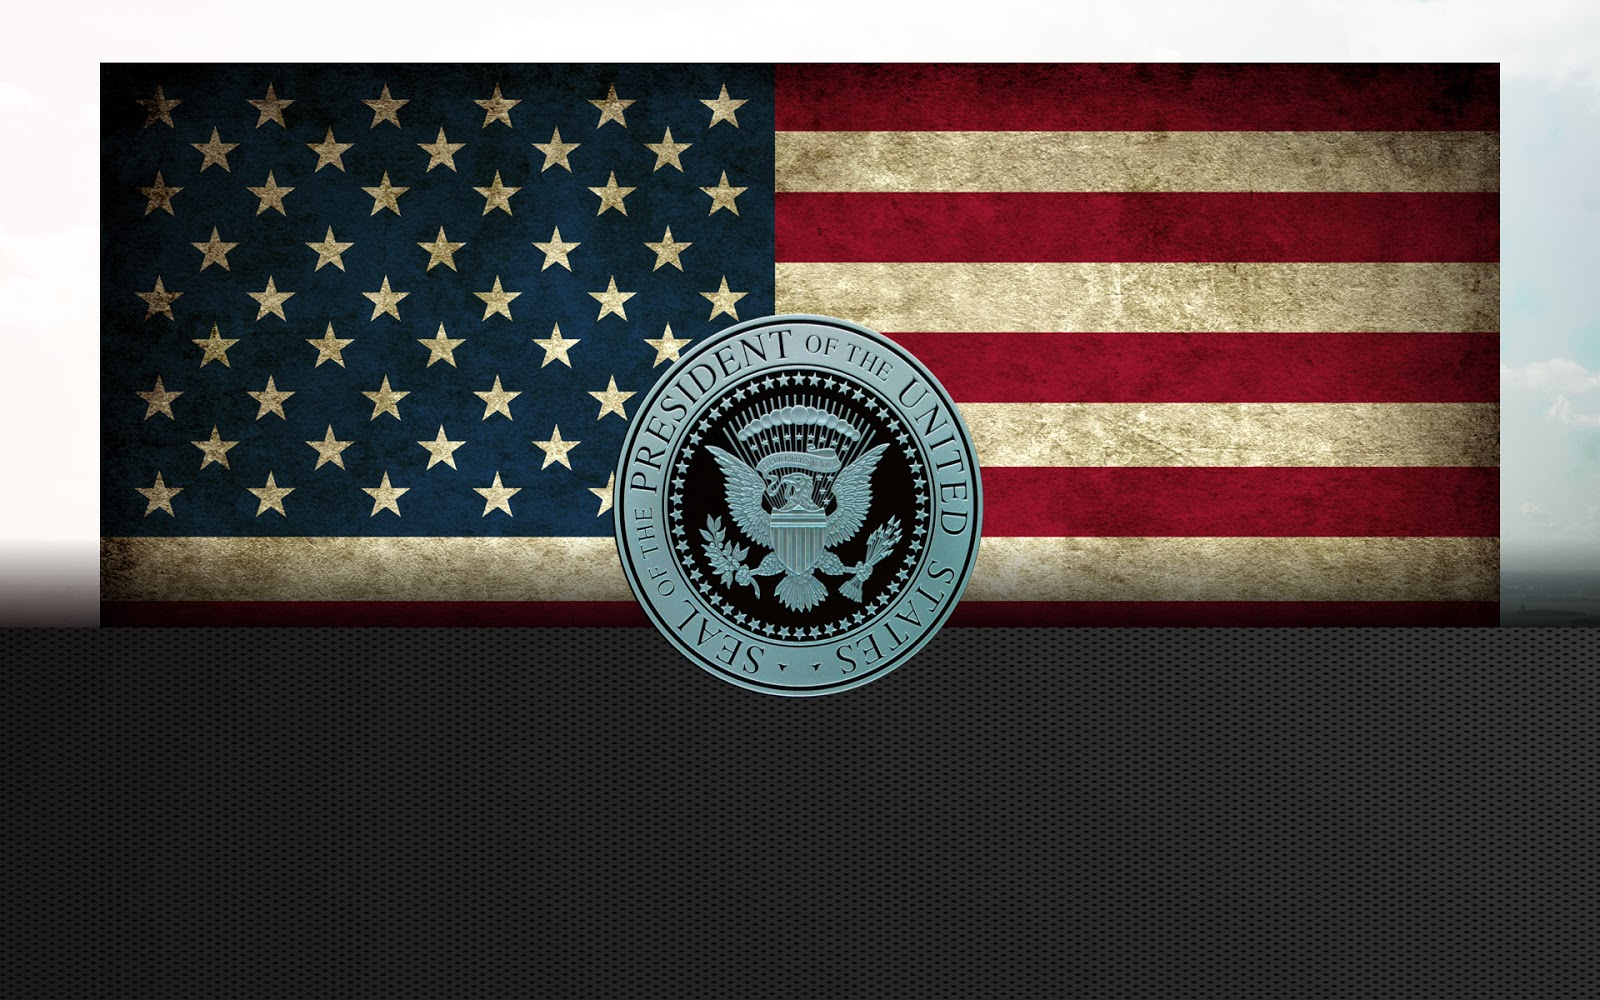 American Flag HD Wallpaper With Seal of President Wallpapers Fever 1600x1000